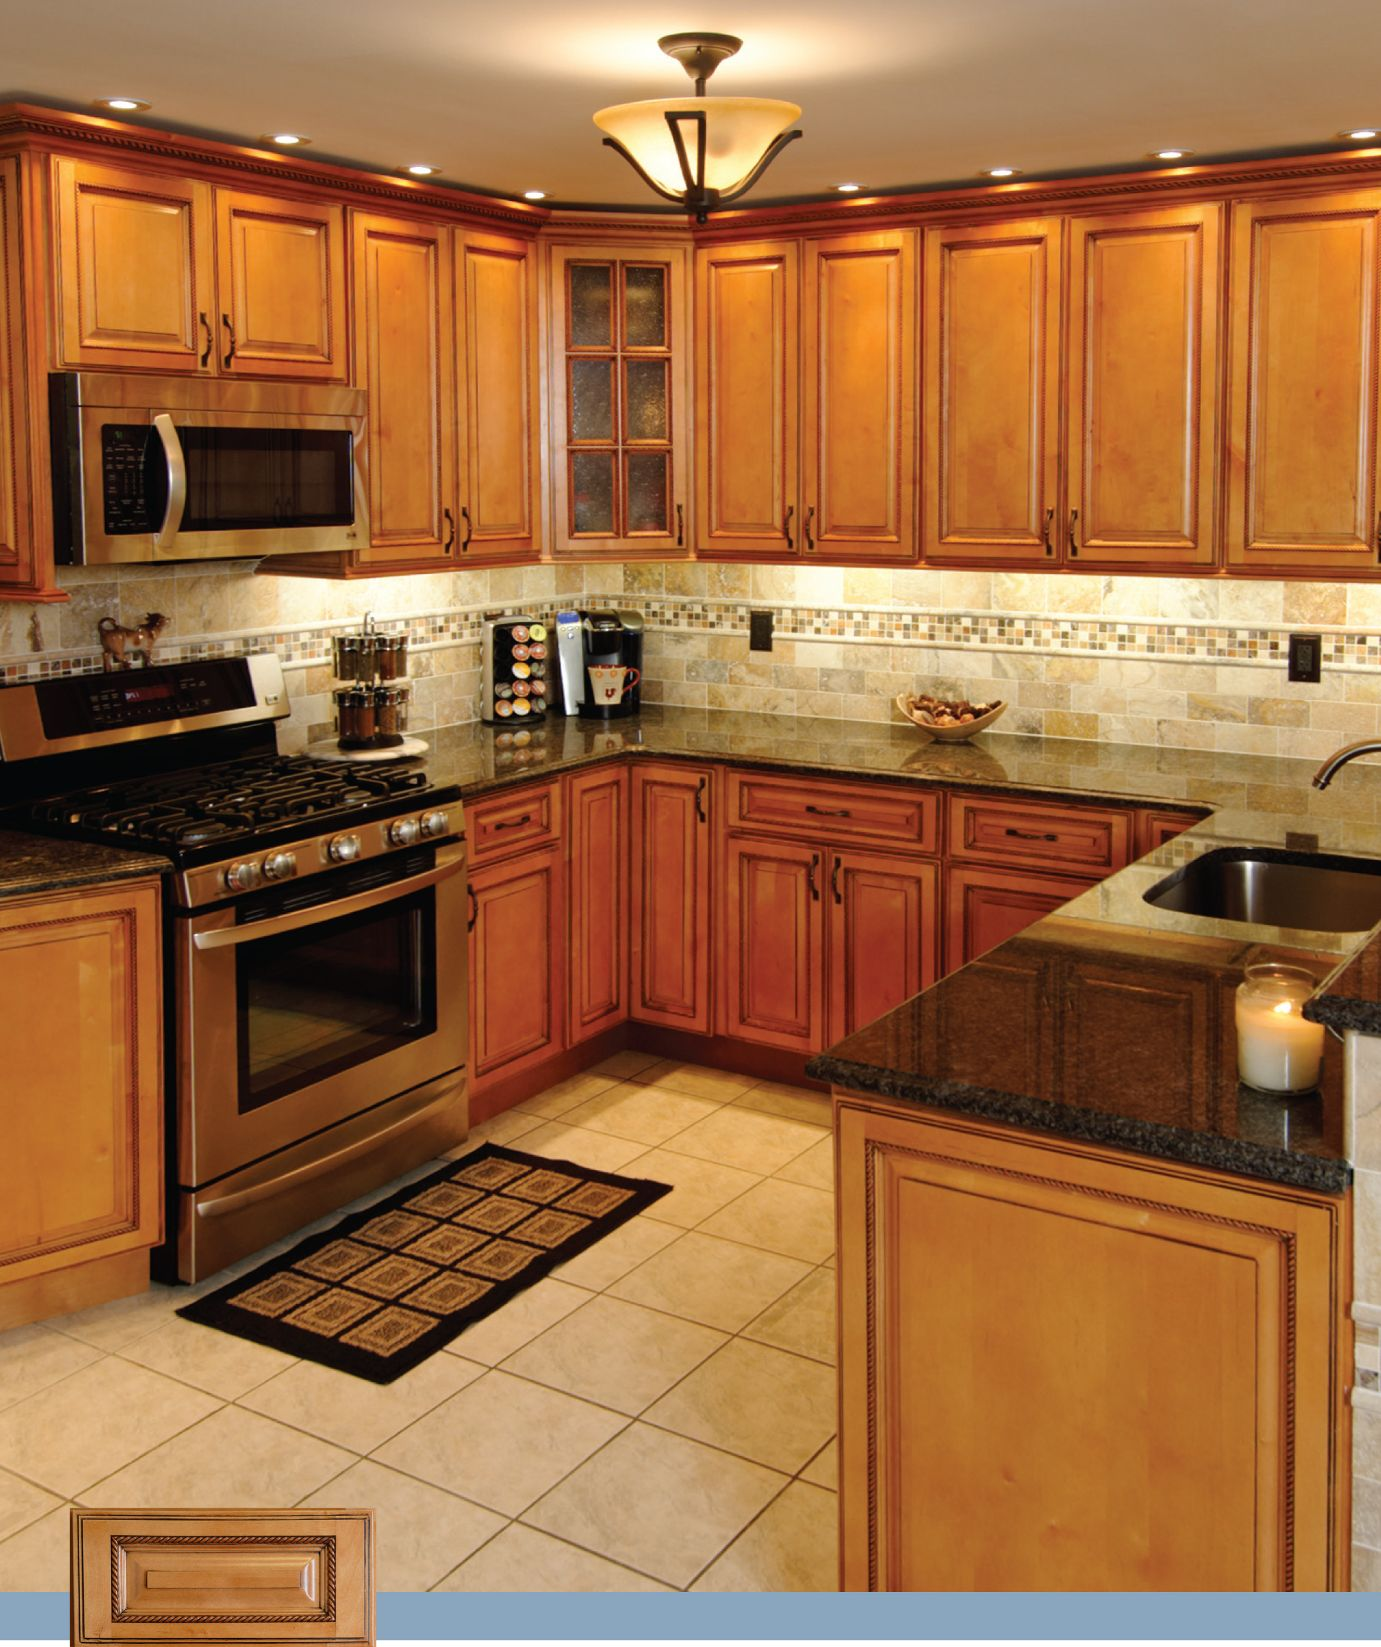 rta kitchen cabinets kitchen cabinets 17 best ideas about Rta Kitchen Cabinets on Pinterest Light oak cabinets Dark counters and Discount cabinets